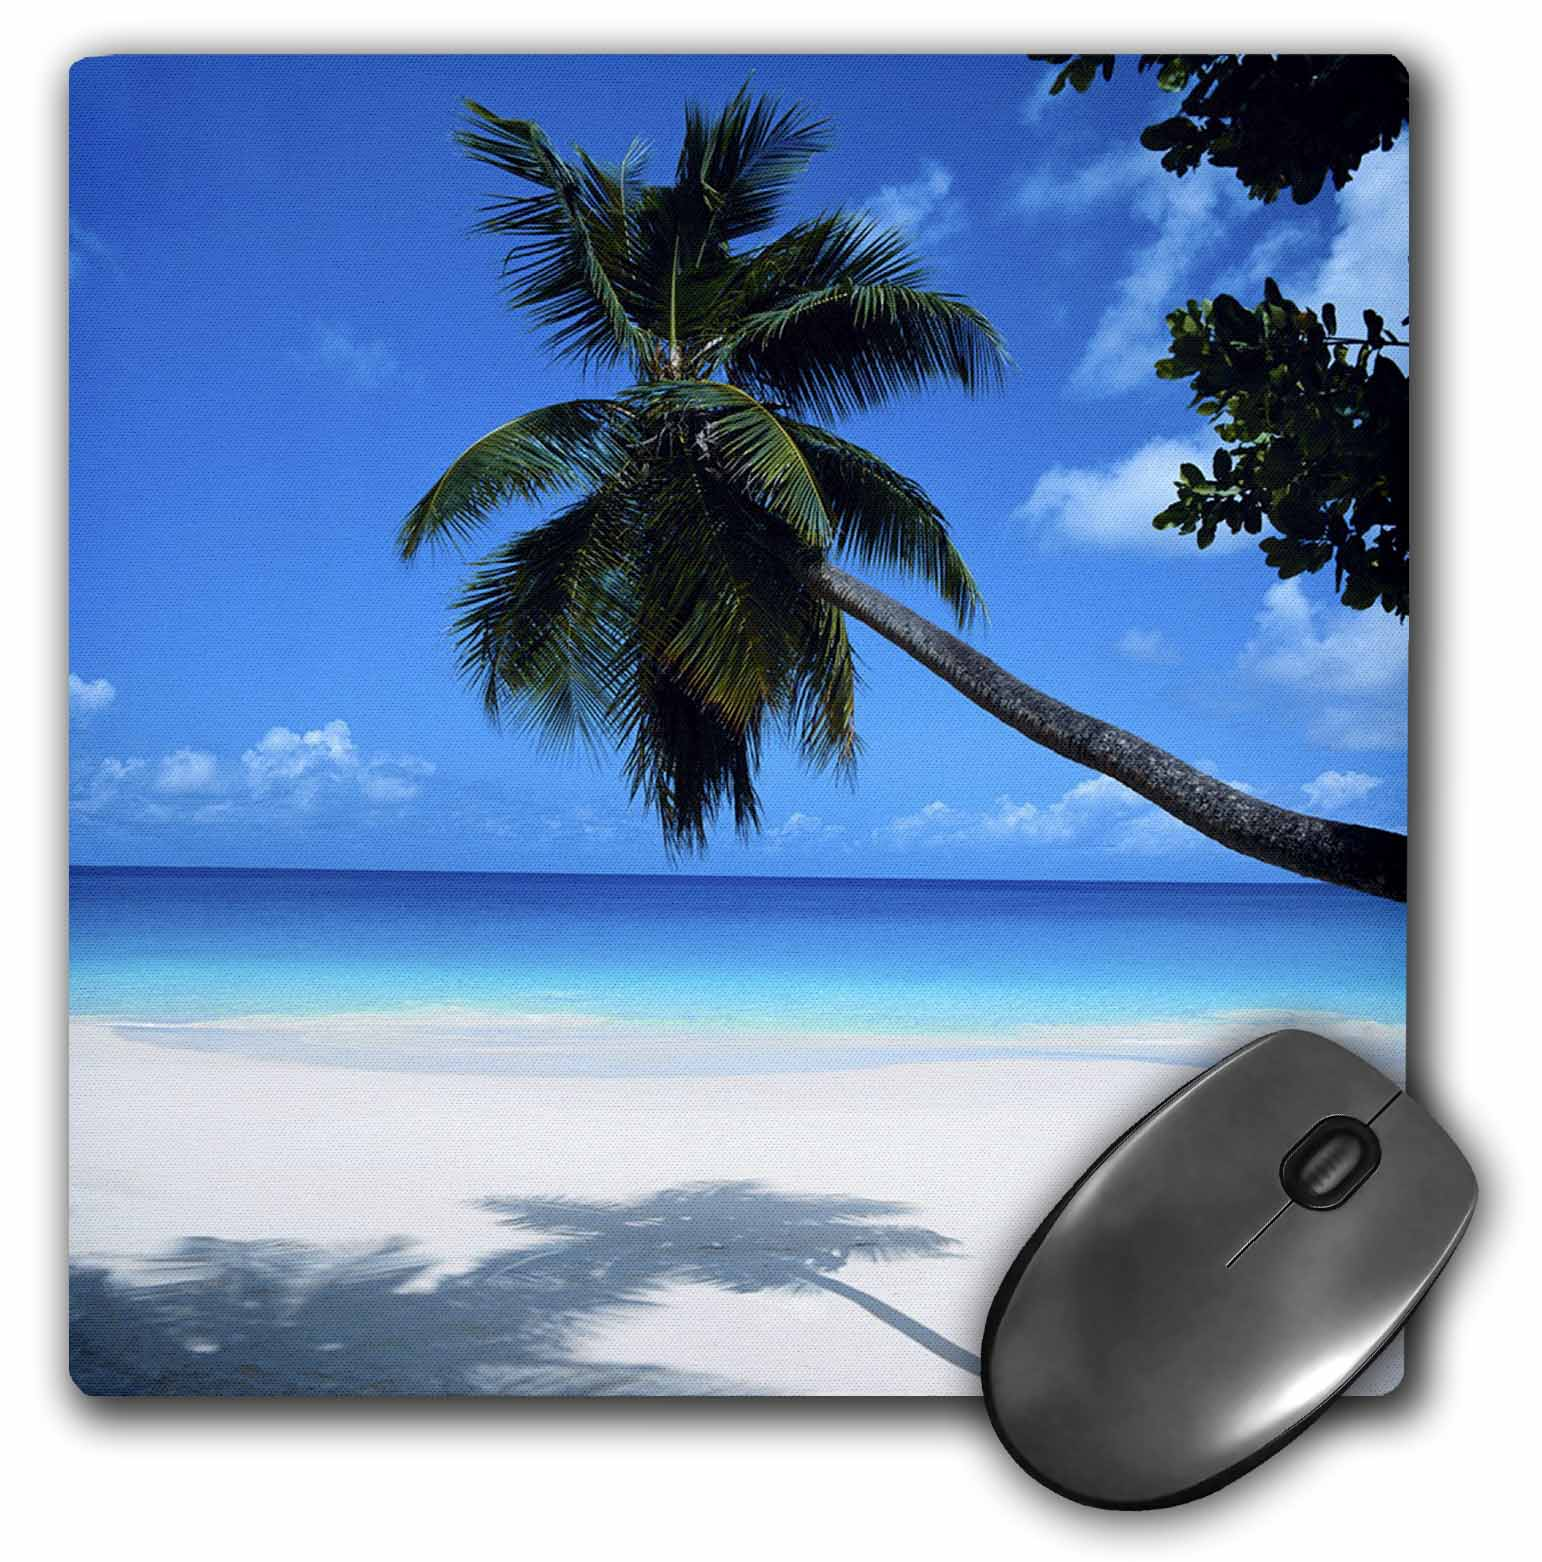 3dRose Tropical Paradise Awaits, Mouse Pad, 8 by 8 inches